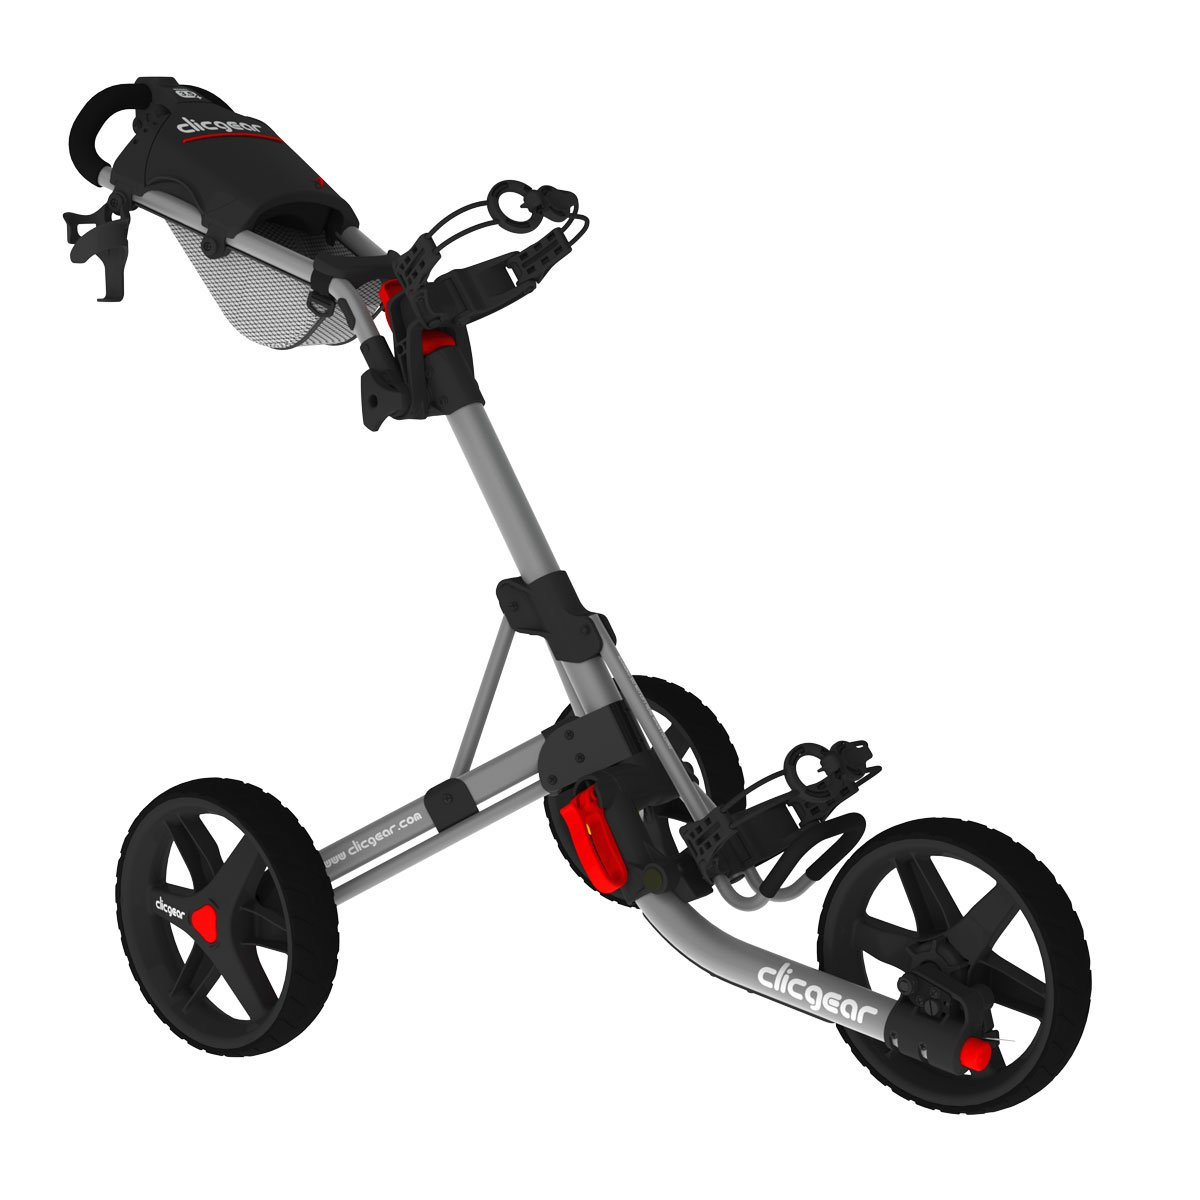 Clicgear Model 3.5+ Golf Cart, Grey/Black by Clicgear